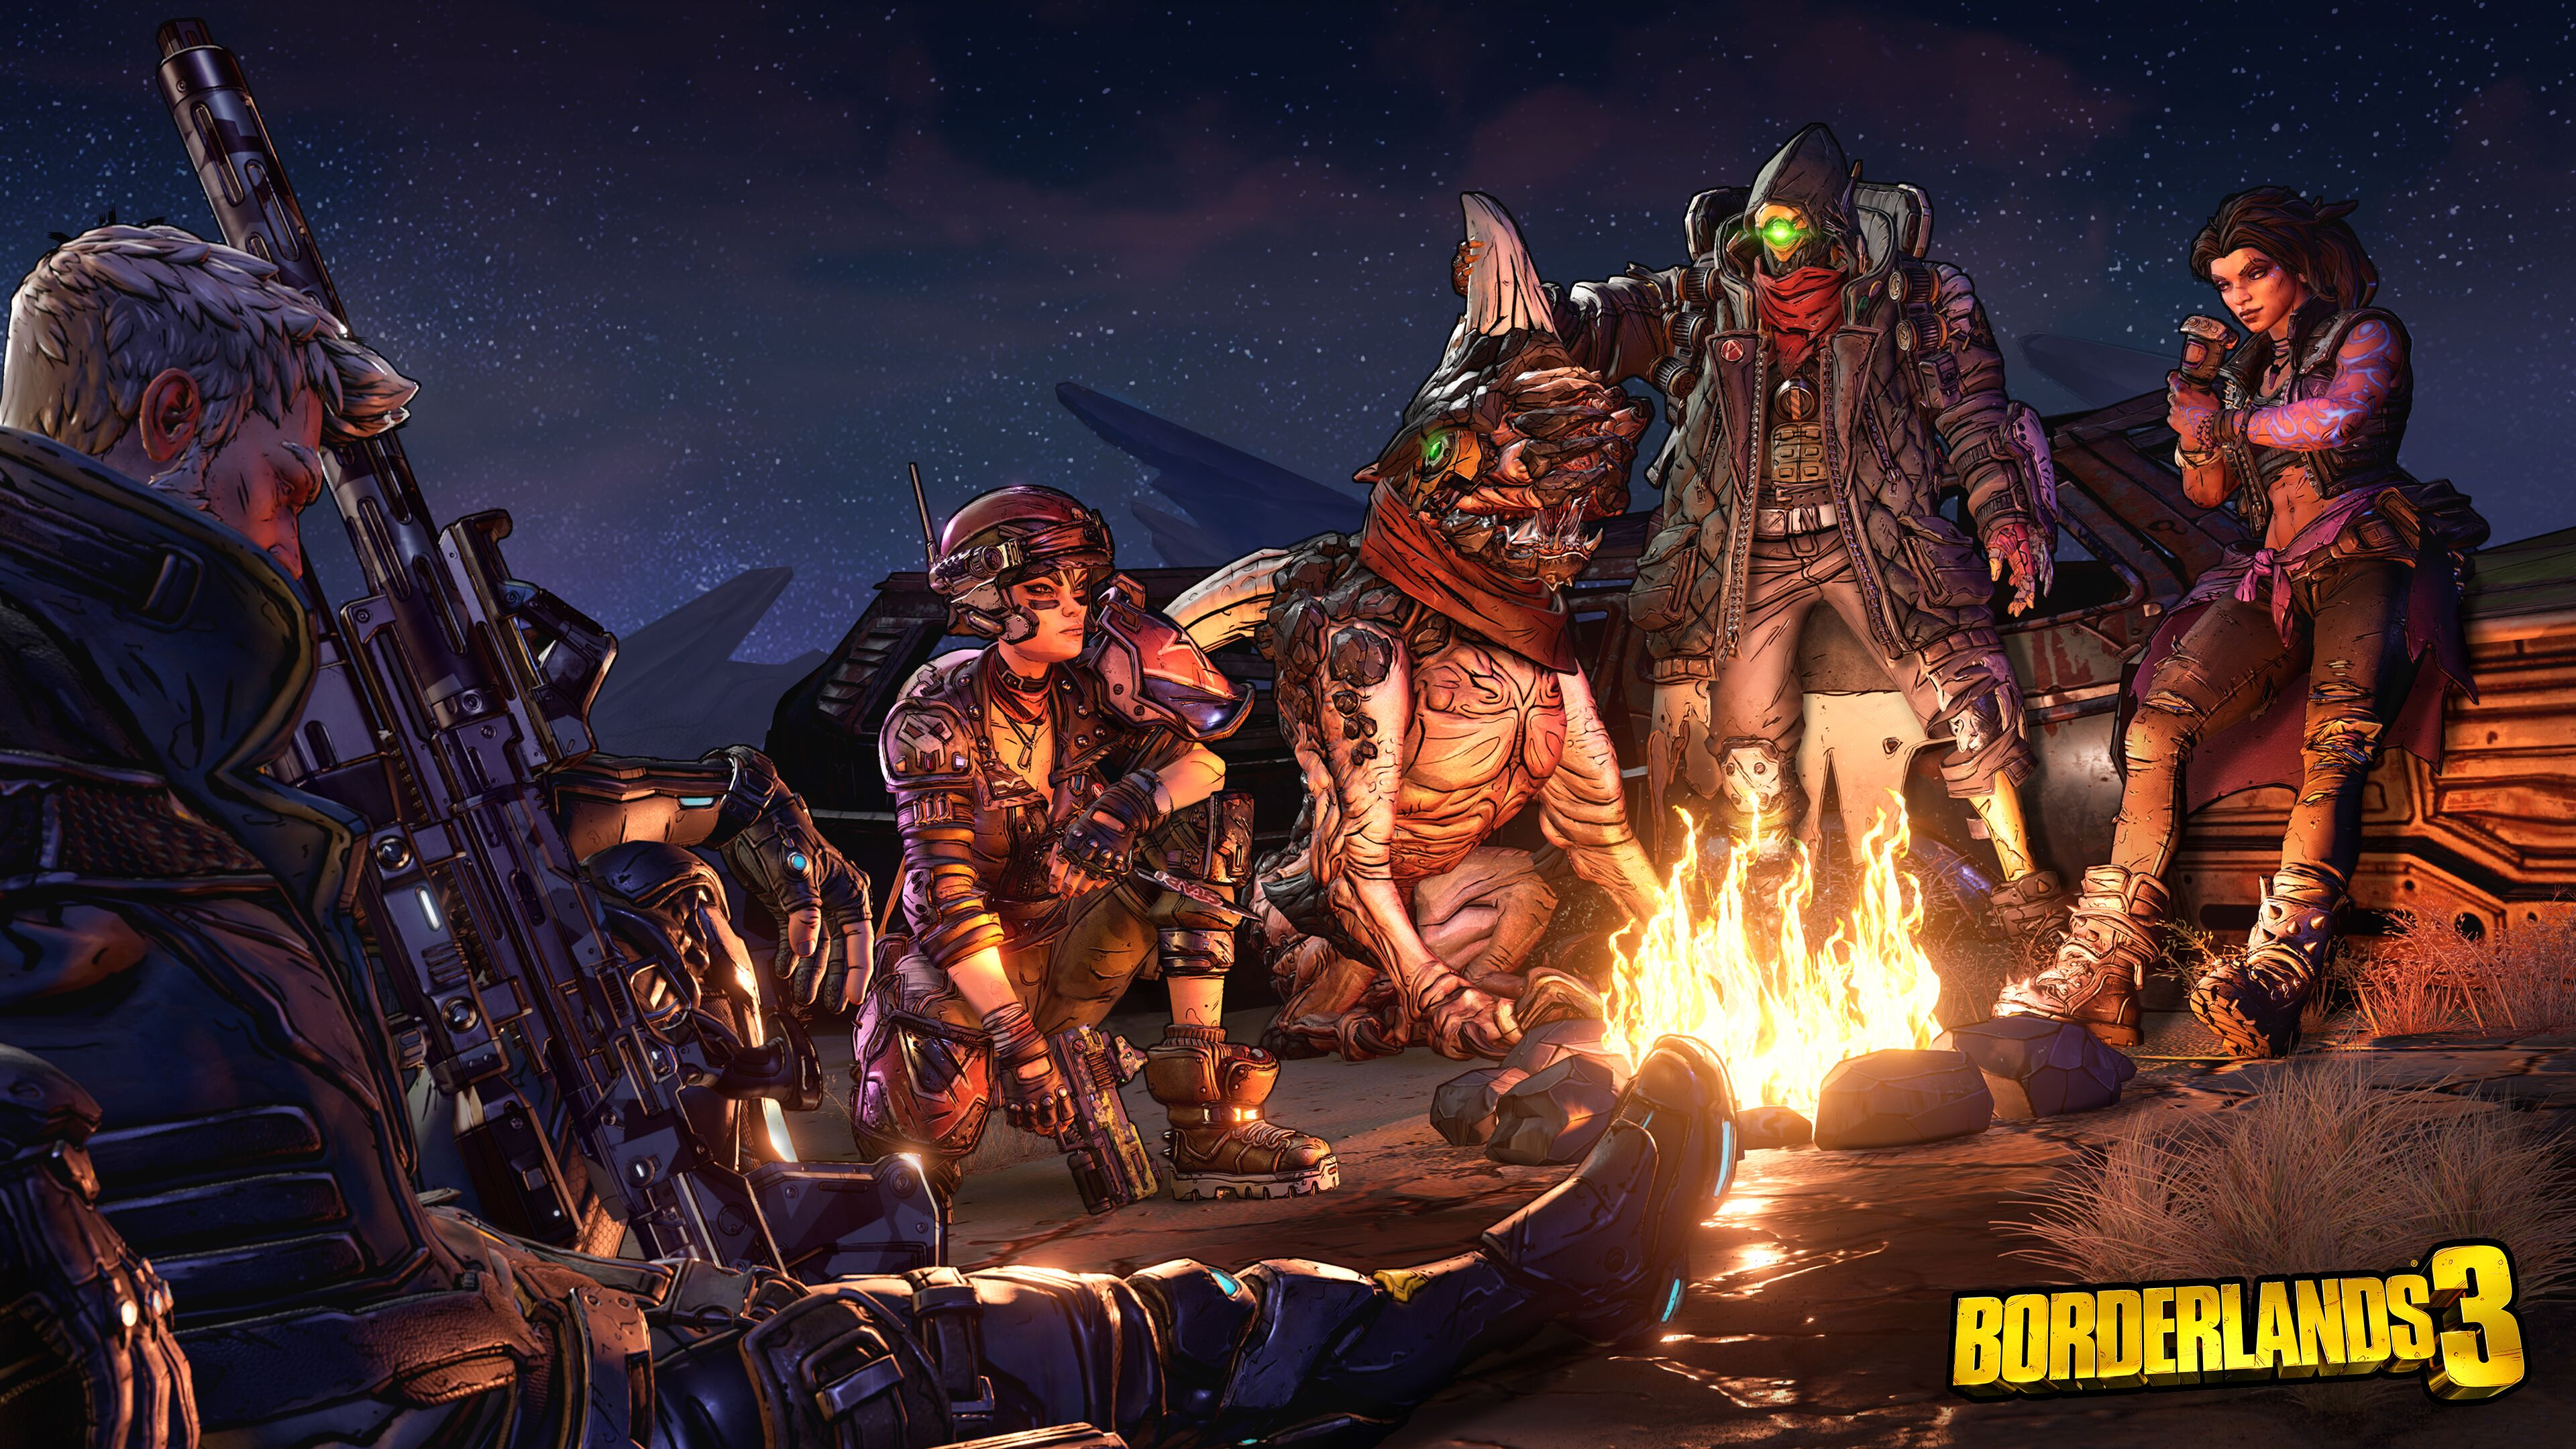 Borderlands 3 will be exclusive to the Epic Store on PC